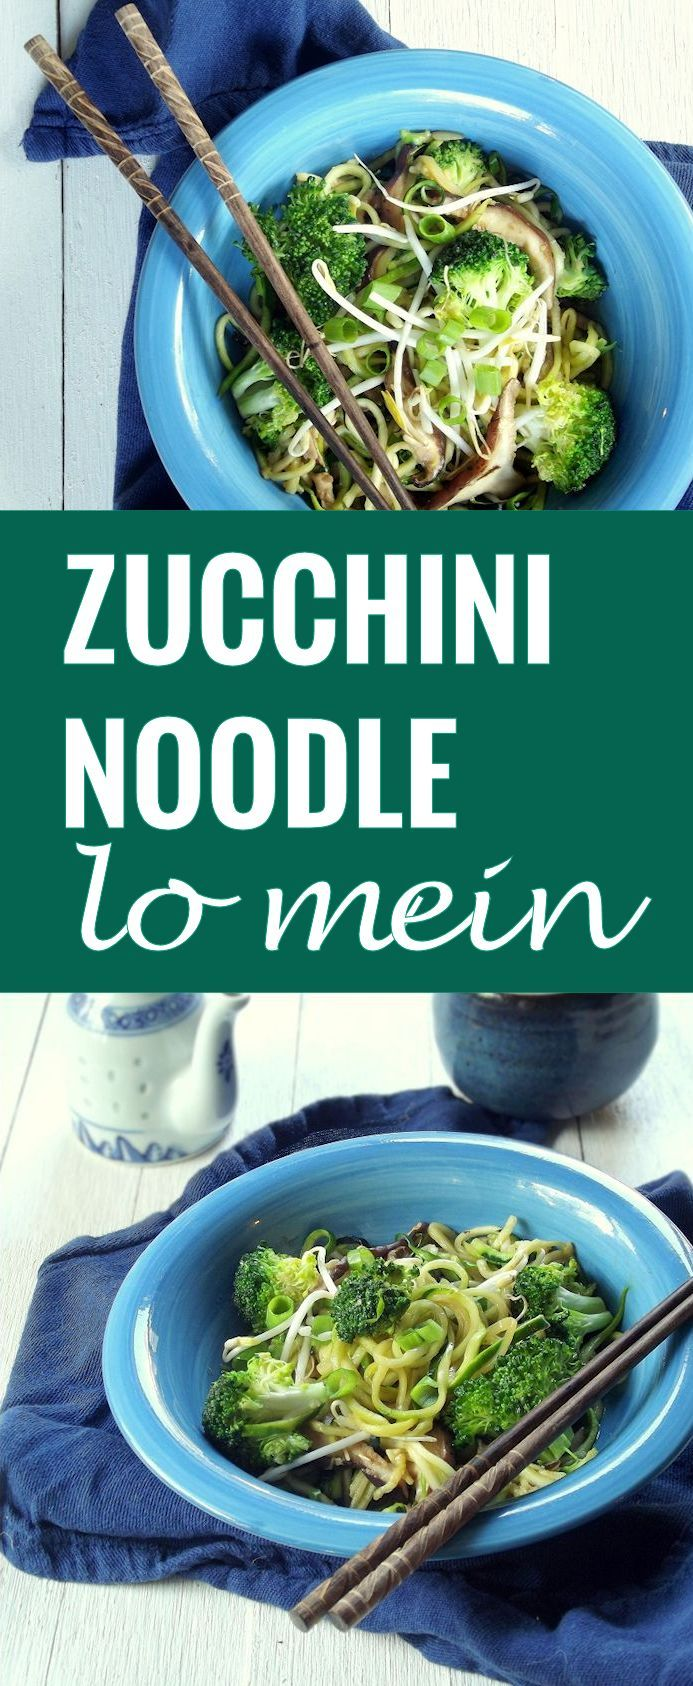 Zucchini Noodle Lo Mein: if you don't tell anyone the noodles are made of zucchini, they'd never know (gf, vegan).